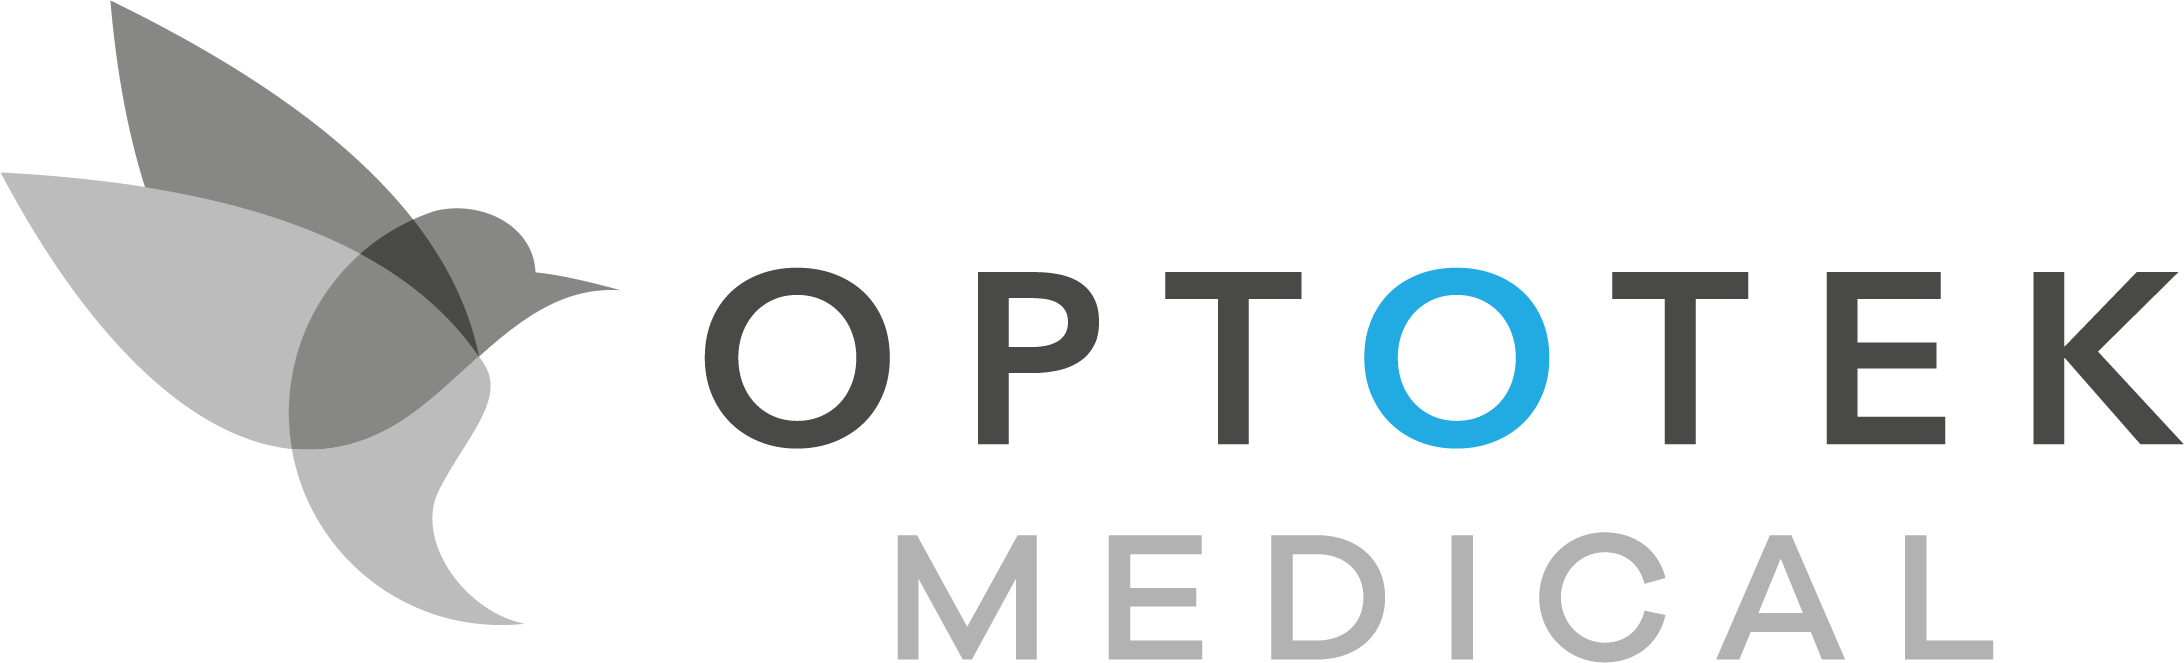 Optotek Medical